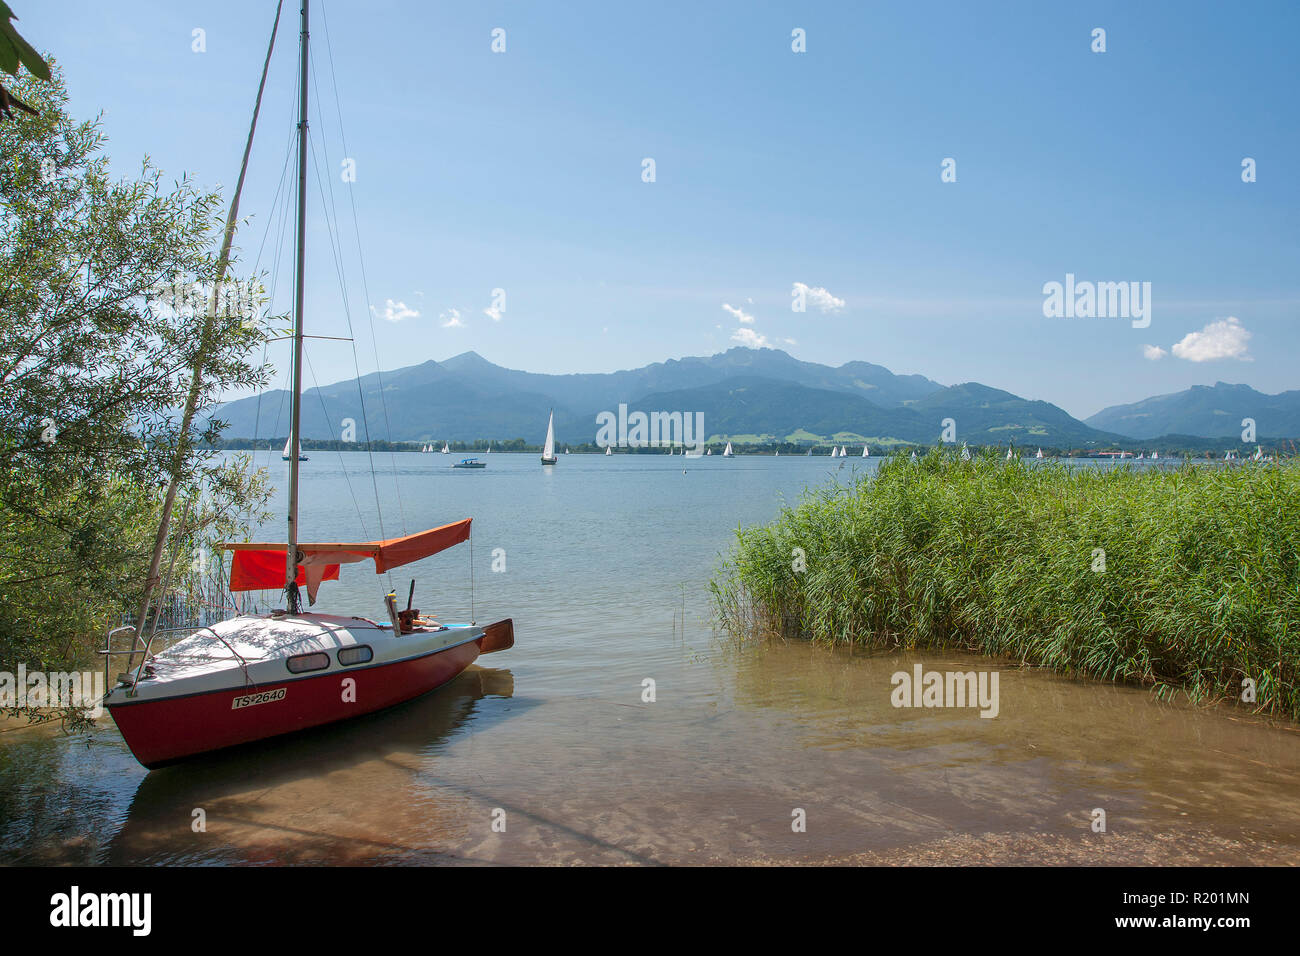 Lake Chiemsee. Sailboat at the shore with island Herreninsel in background, Bavaria, Germany - Stock Image